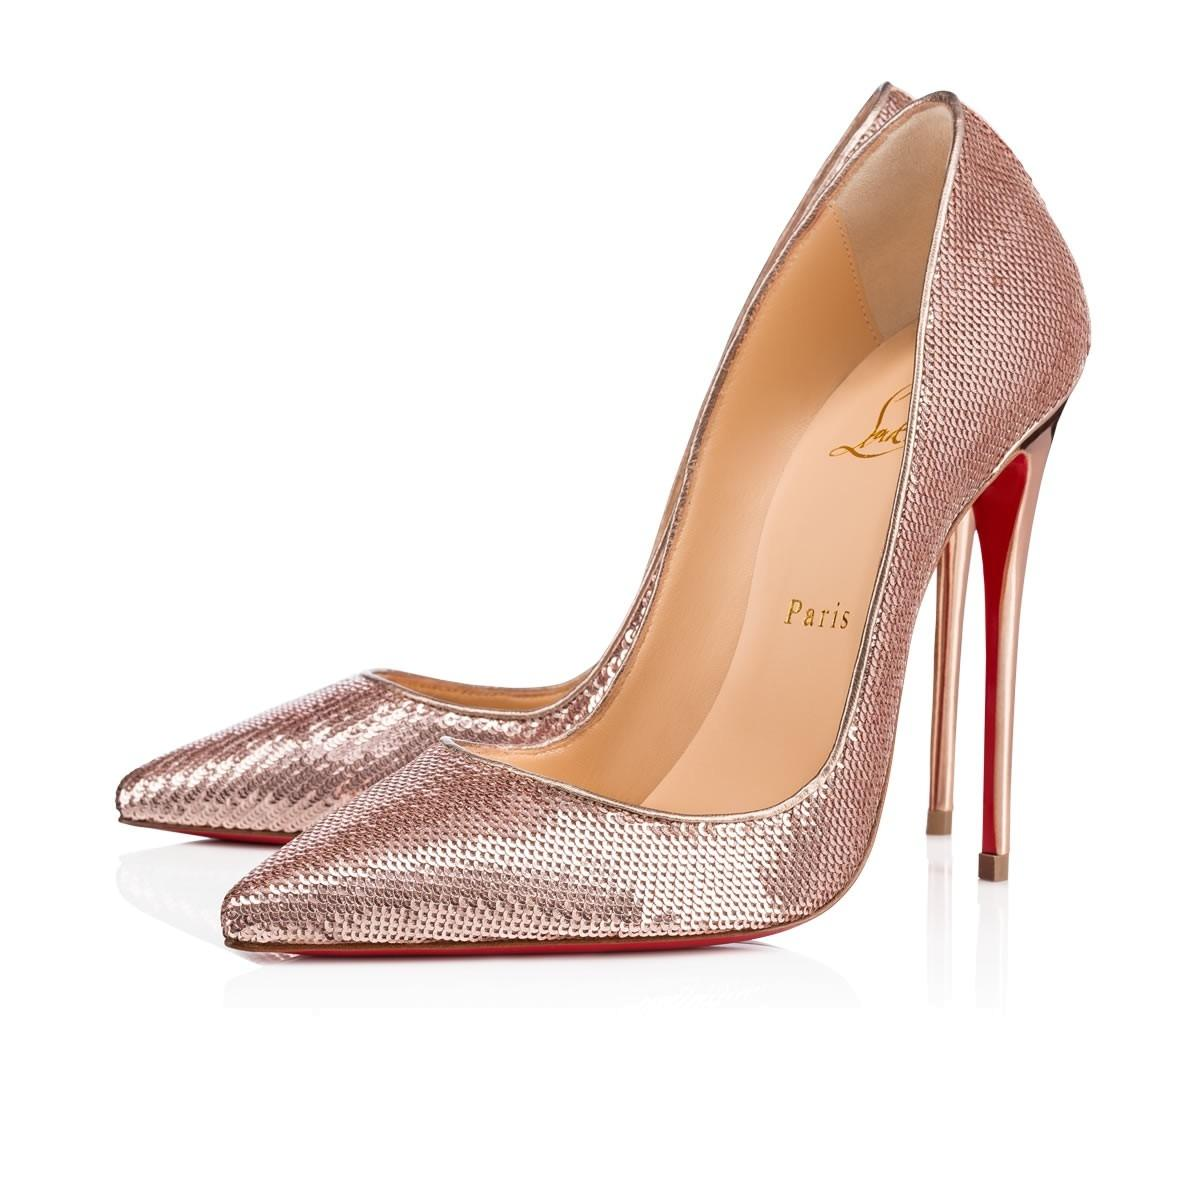 42f4f419b379 ... usa christian louboutin sequin so kate pigalle rose gold pumps 31290  c03c1